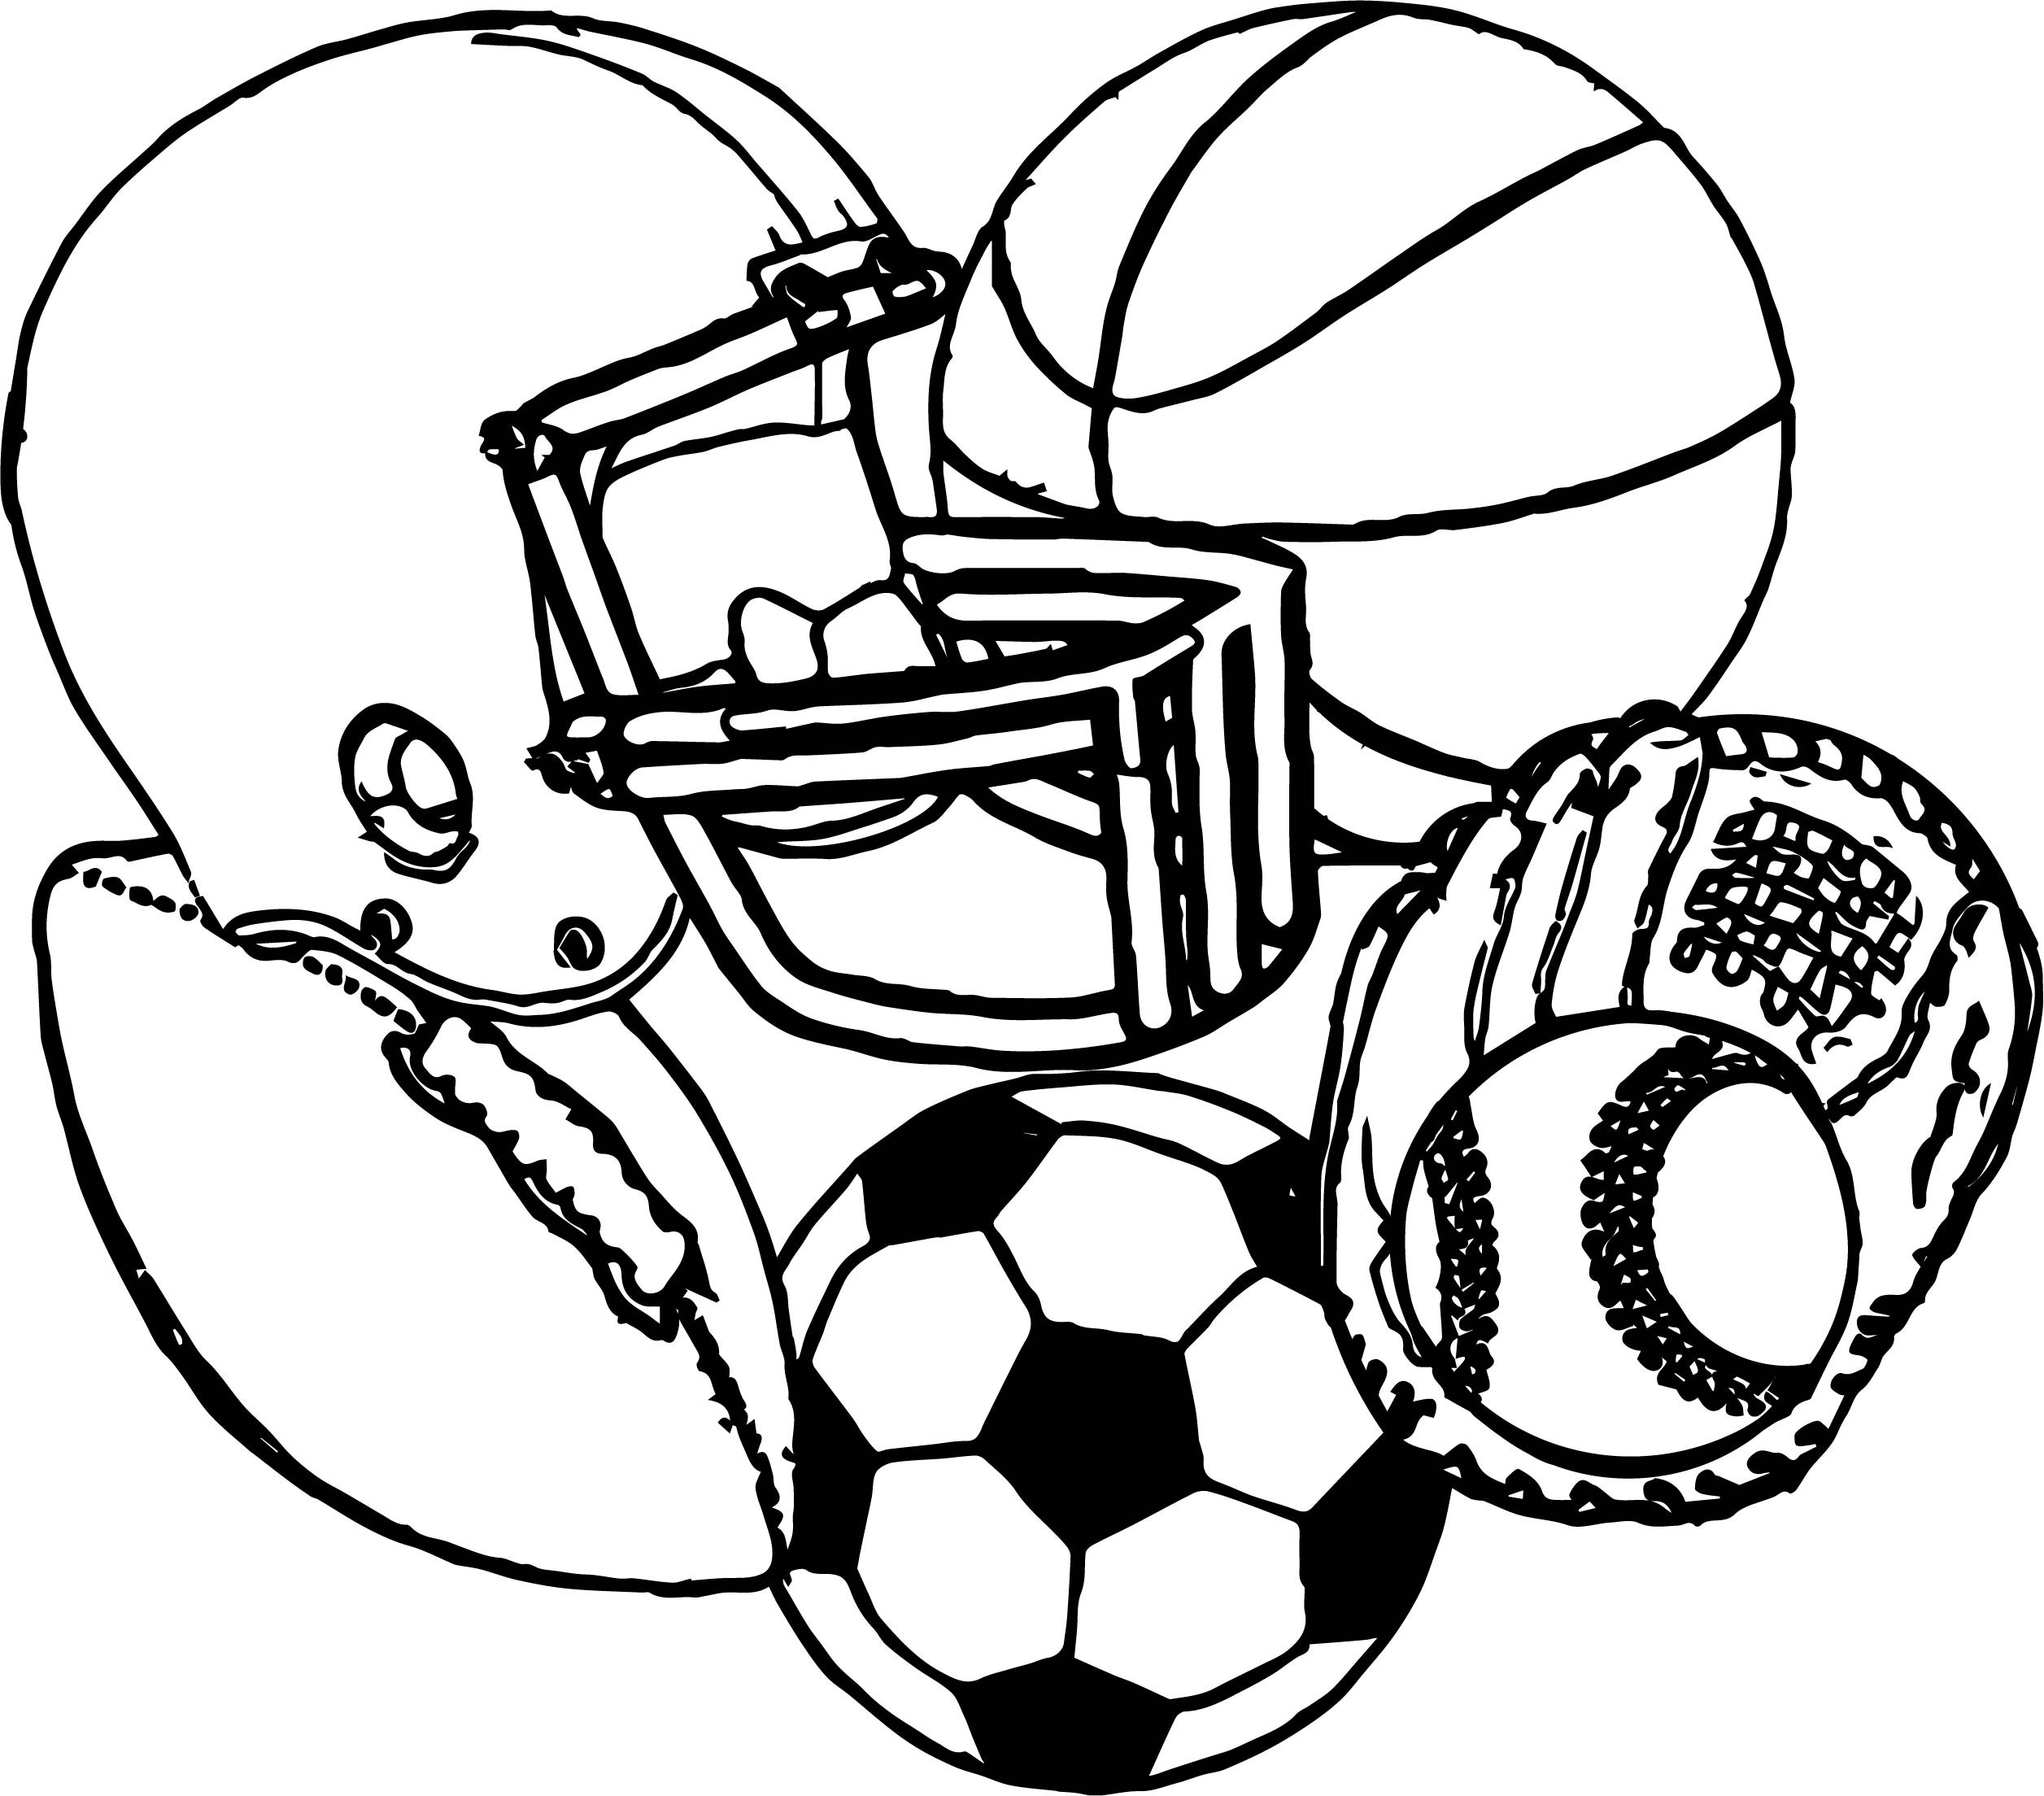 Football Drawings Images